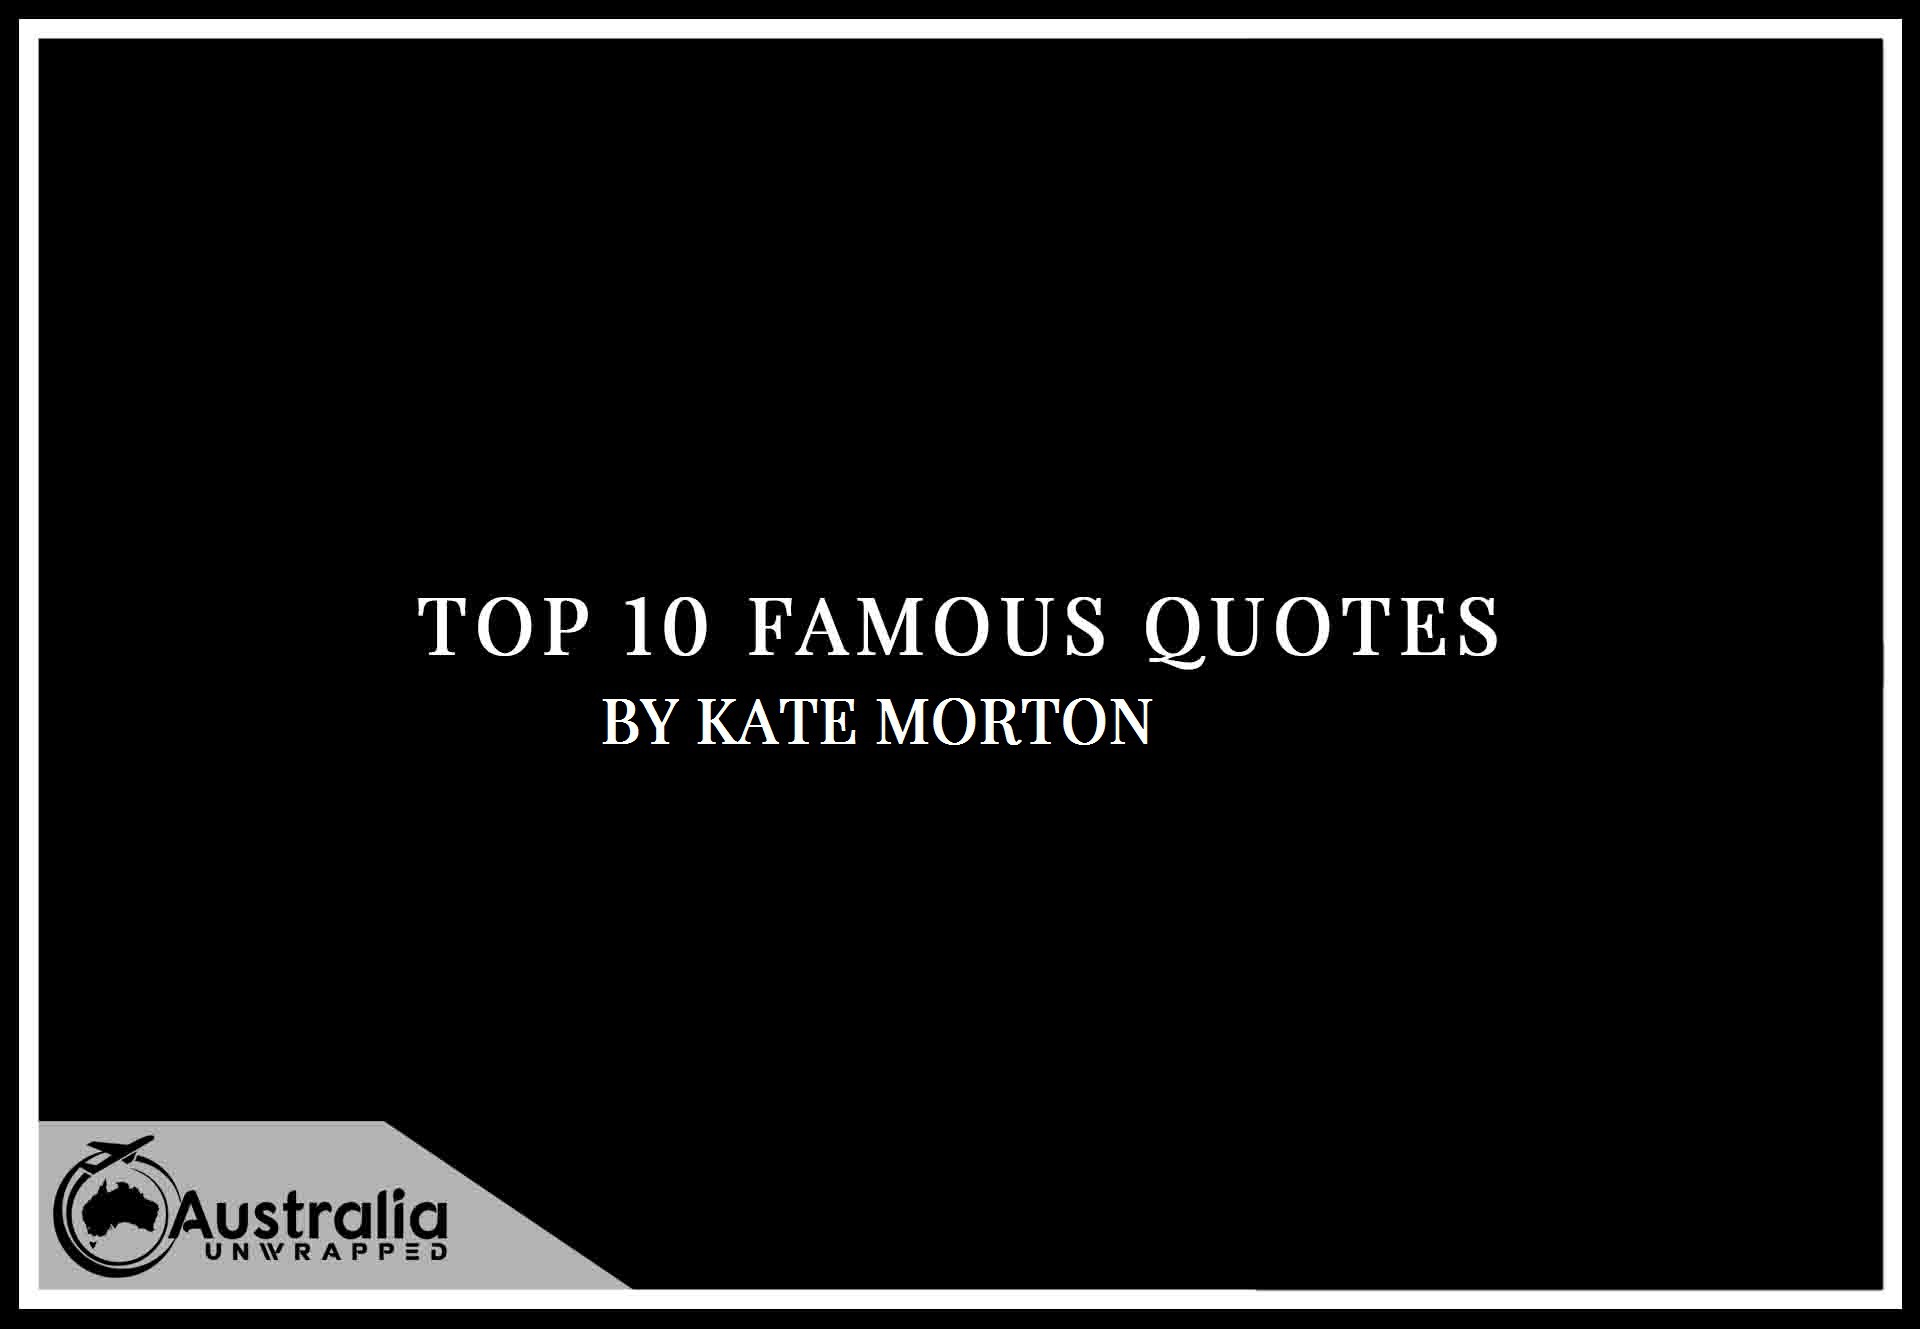 Kate Morton's Top 10 Popular and Famous Quotes